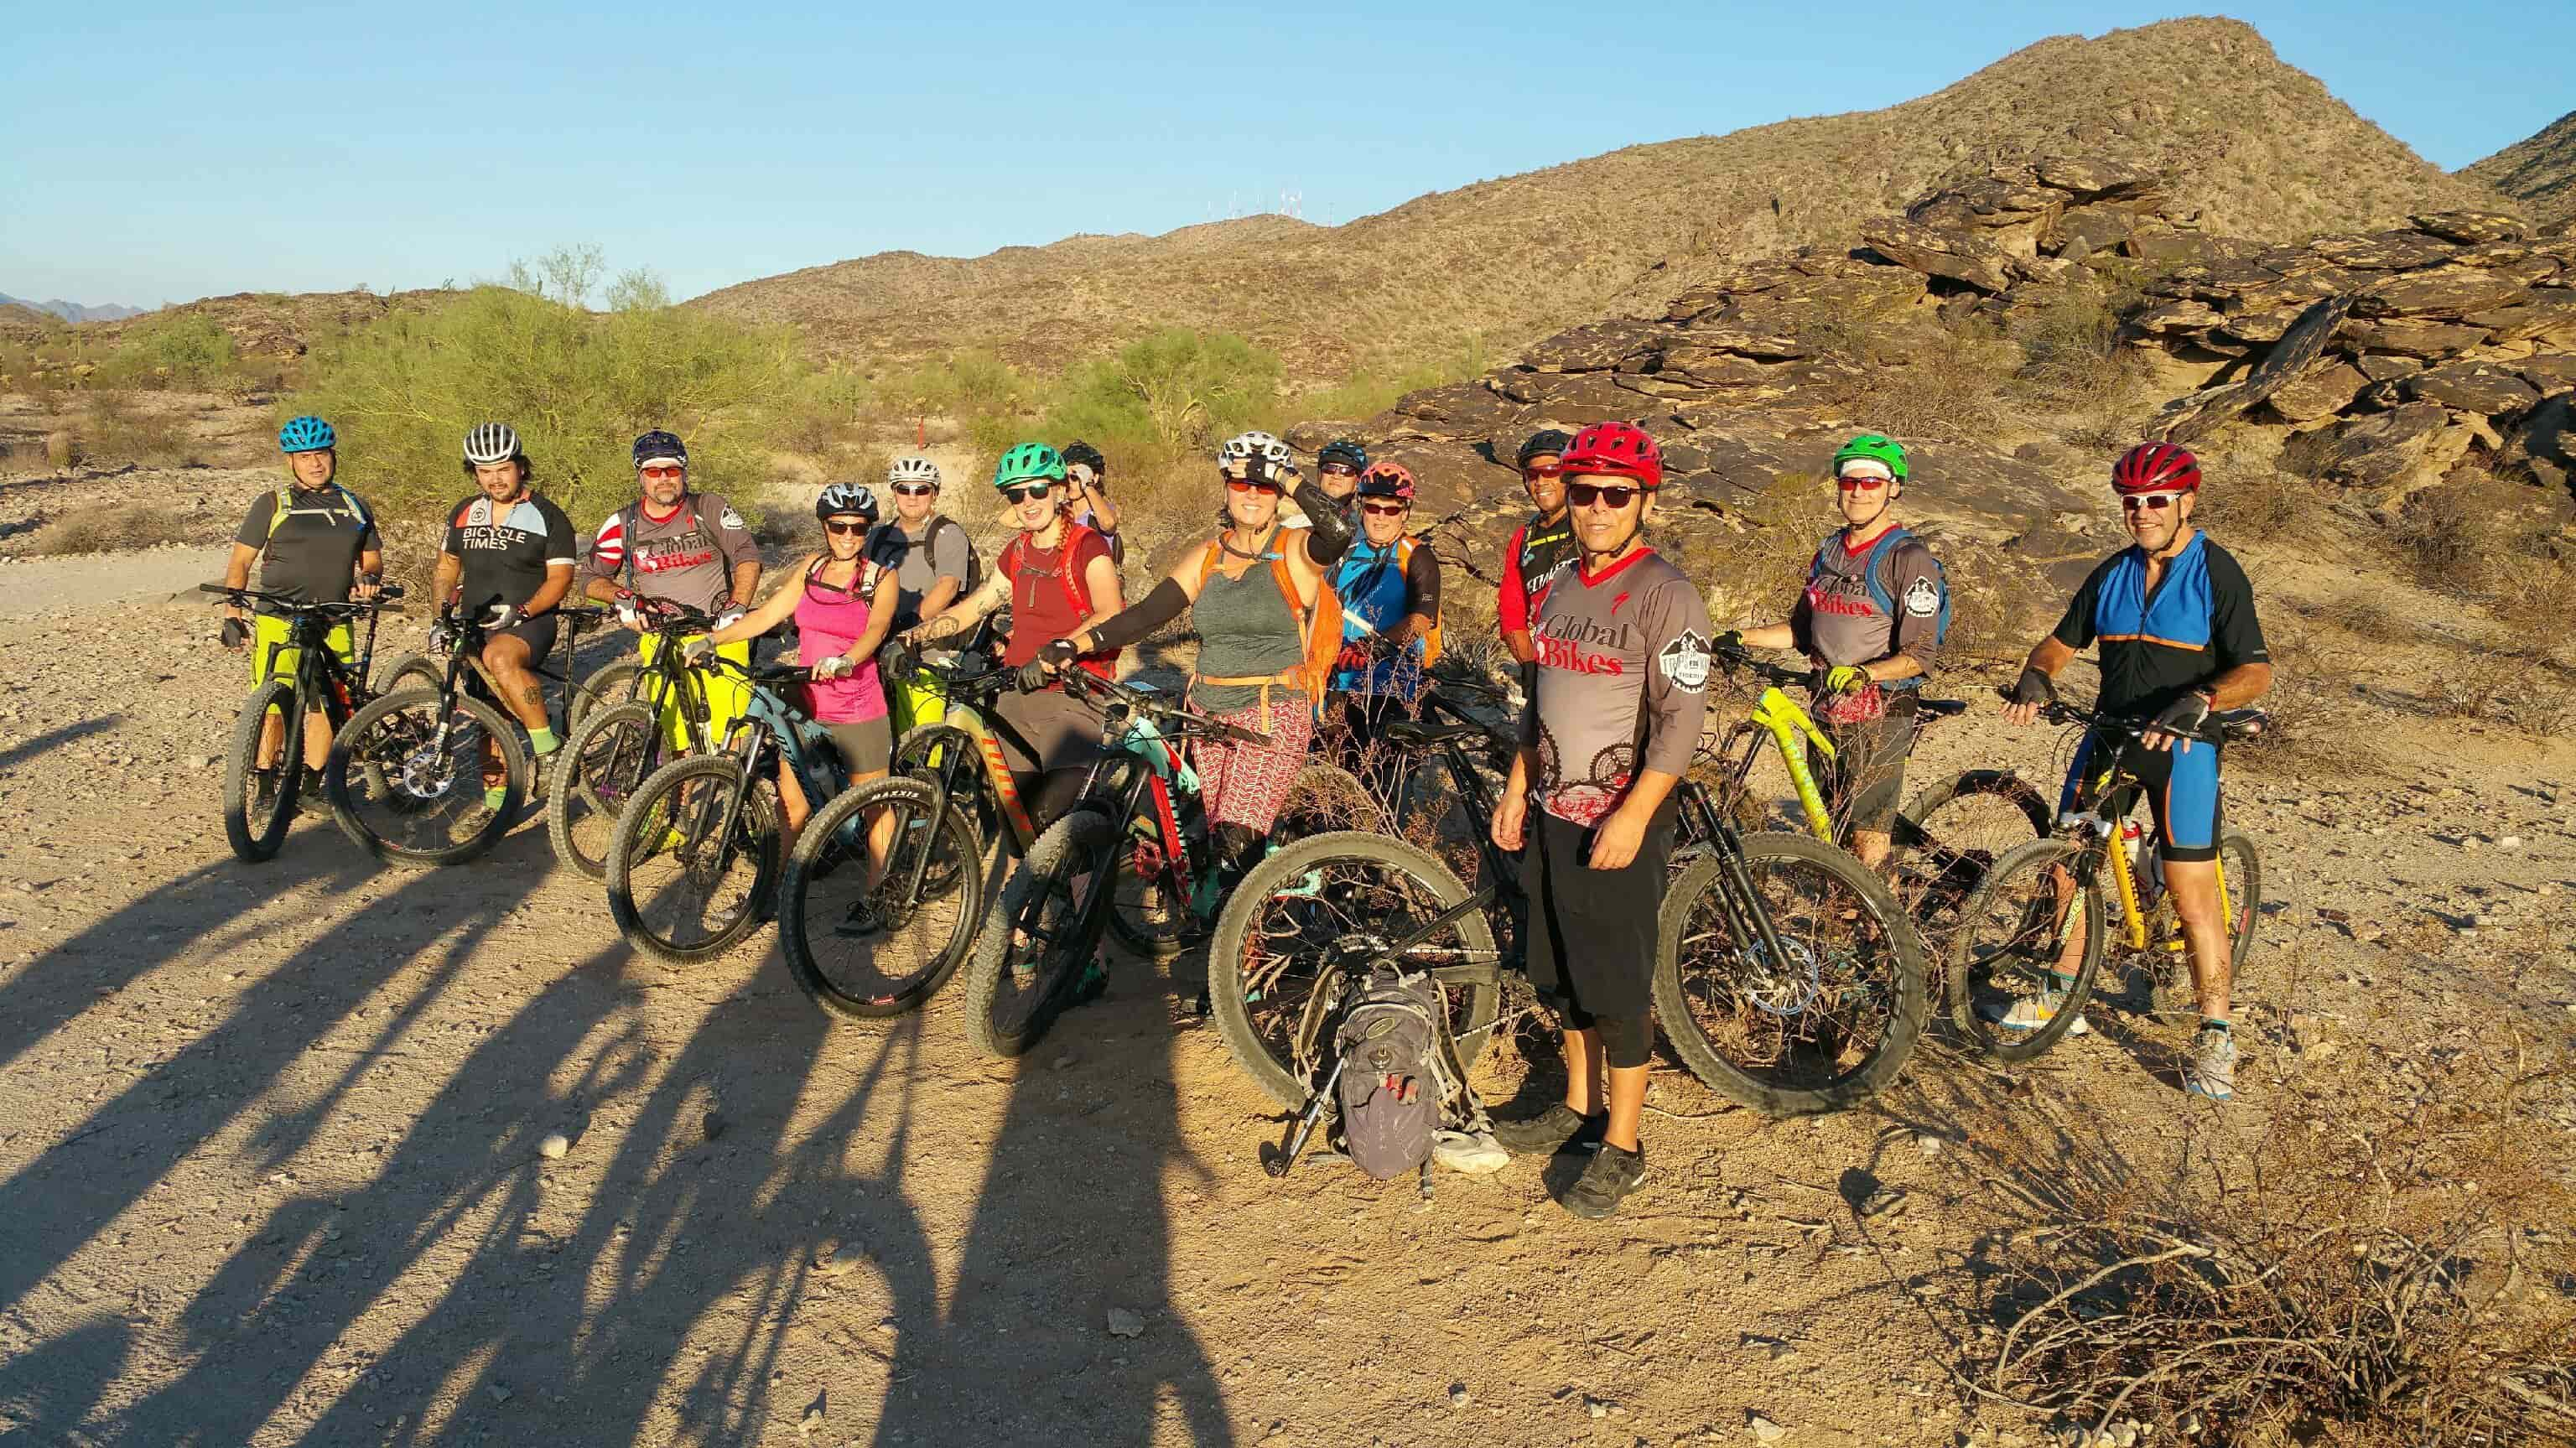 Bicycle shop, Specialized Turbo, Haibike bikes, iZip bikes, Yamaha bikes, Bulls bikes, Raleigh electric bikes, Gilbert, Mesa, Chandler, Higley, Queen Creek, Ahwatukee